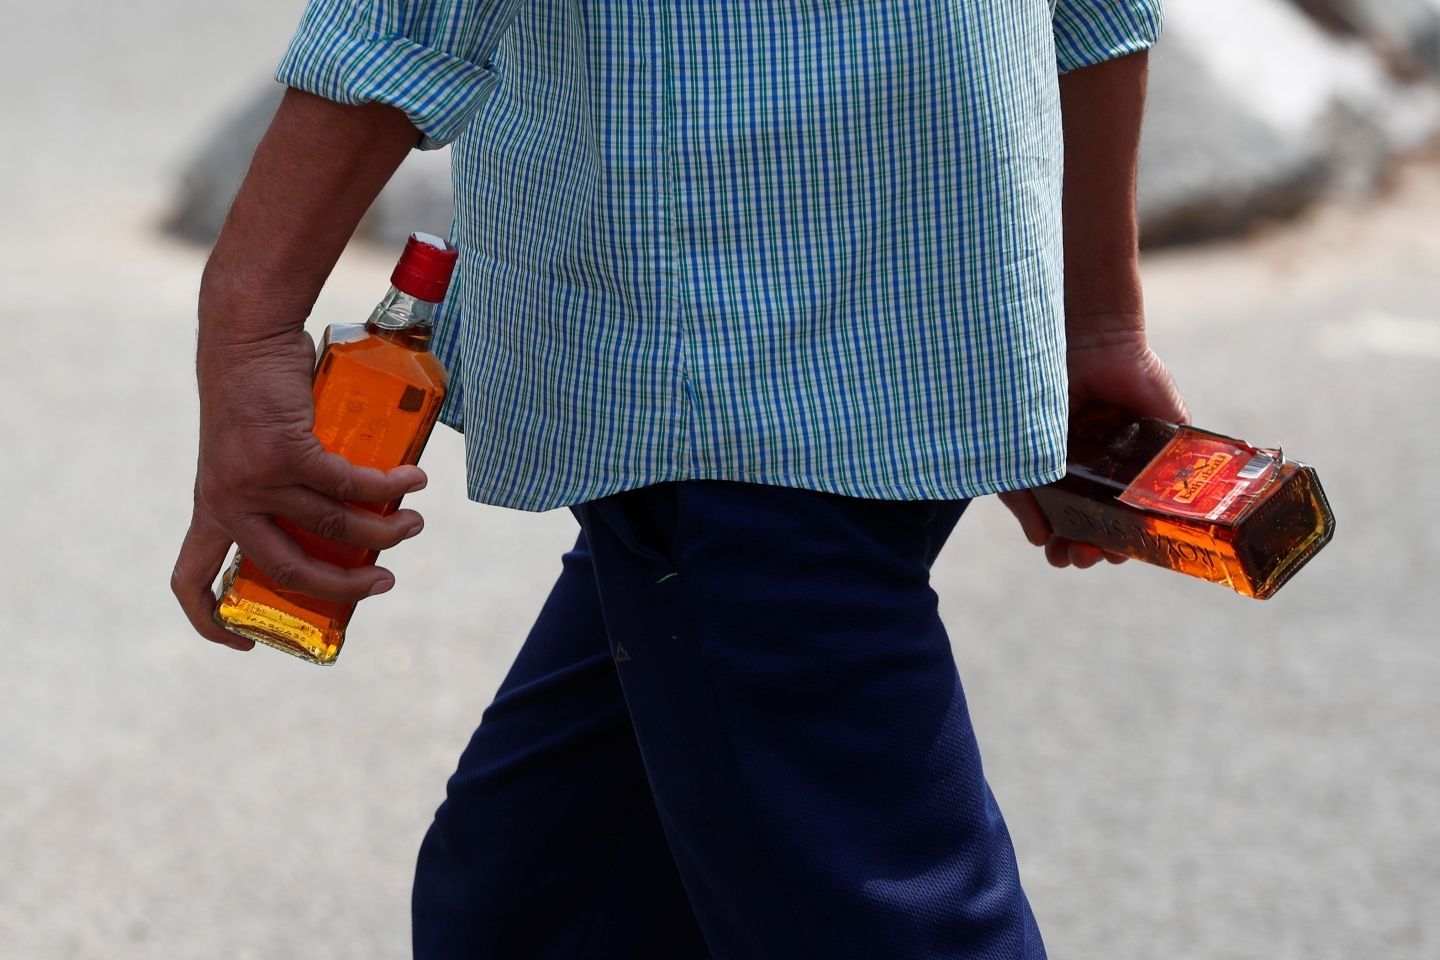 In photos: What happened when India's liquor shops reopened after 40 days of lockdown